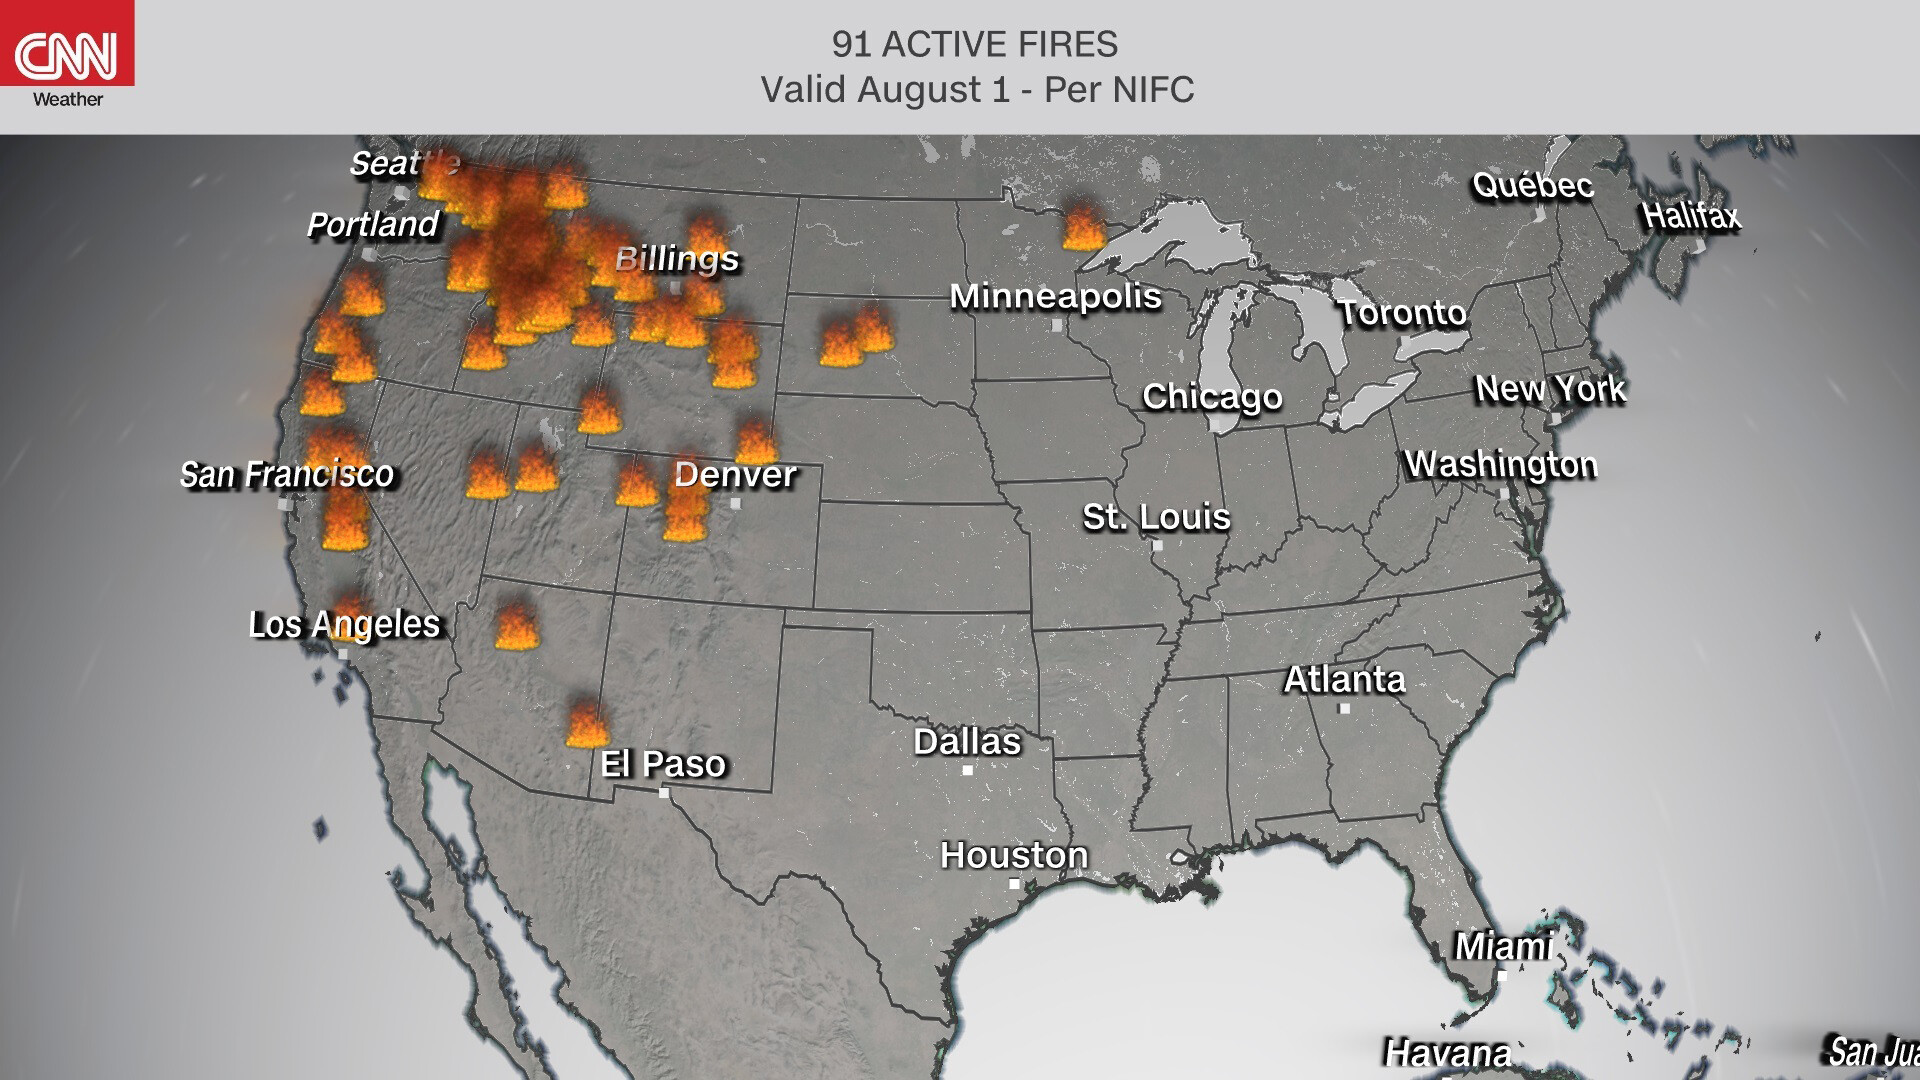 91 wildfires are now burning across the US, with Oregon's Bootleg Fire growing to over 400,000 acres